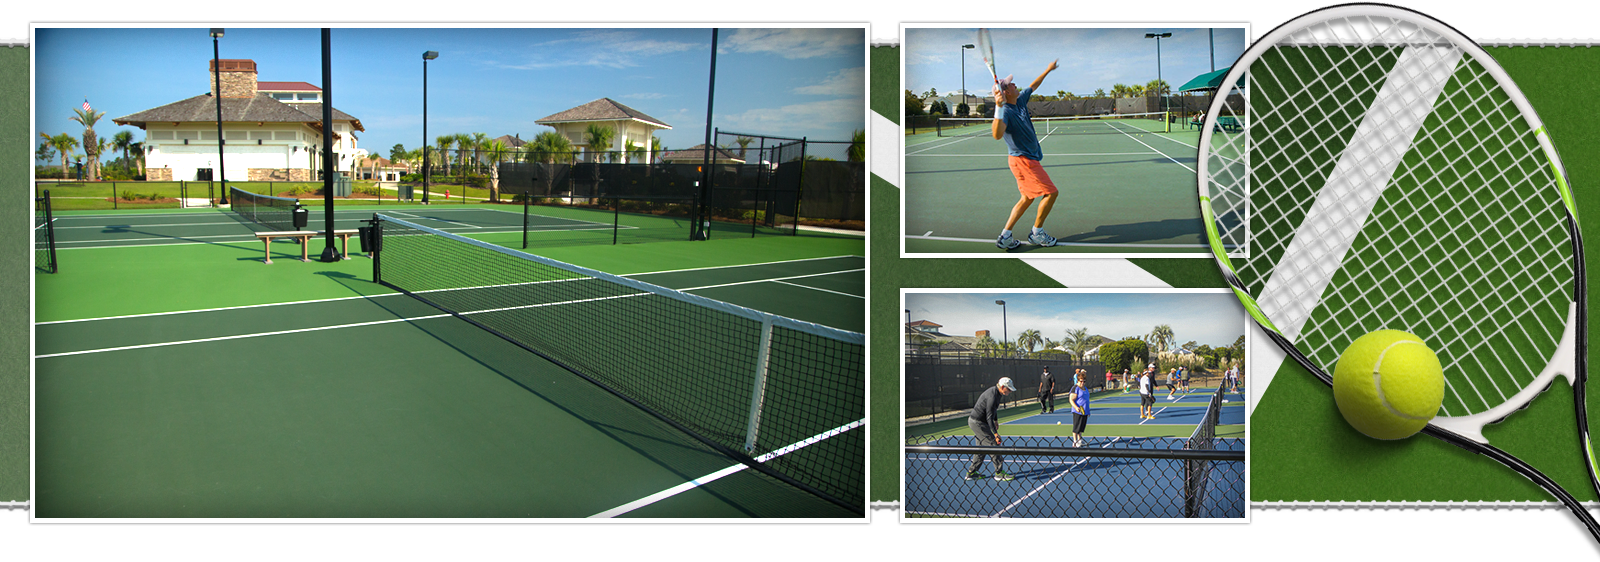 Lighted Tennis and Basketball Courts at Compass Pointe, Leland, NC